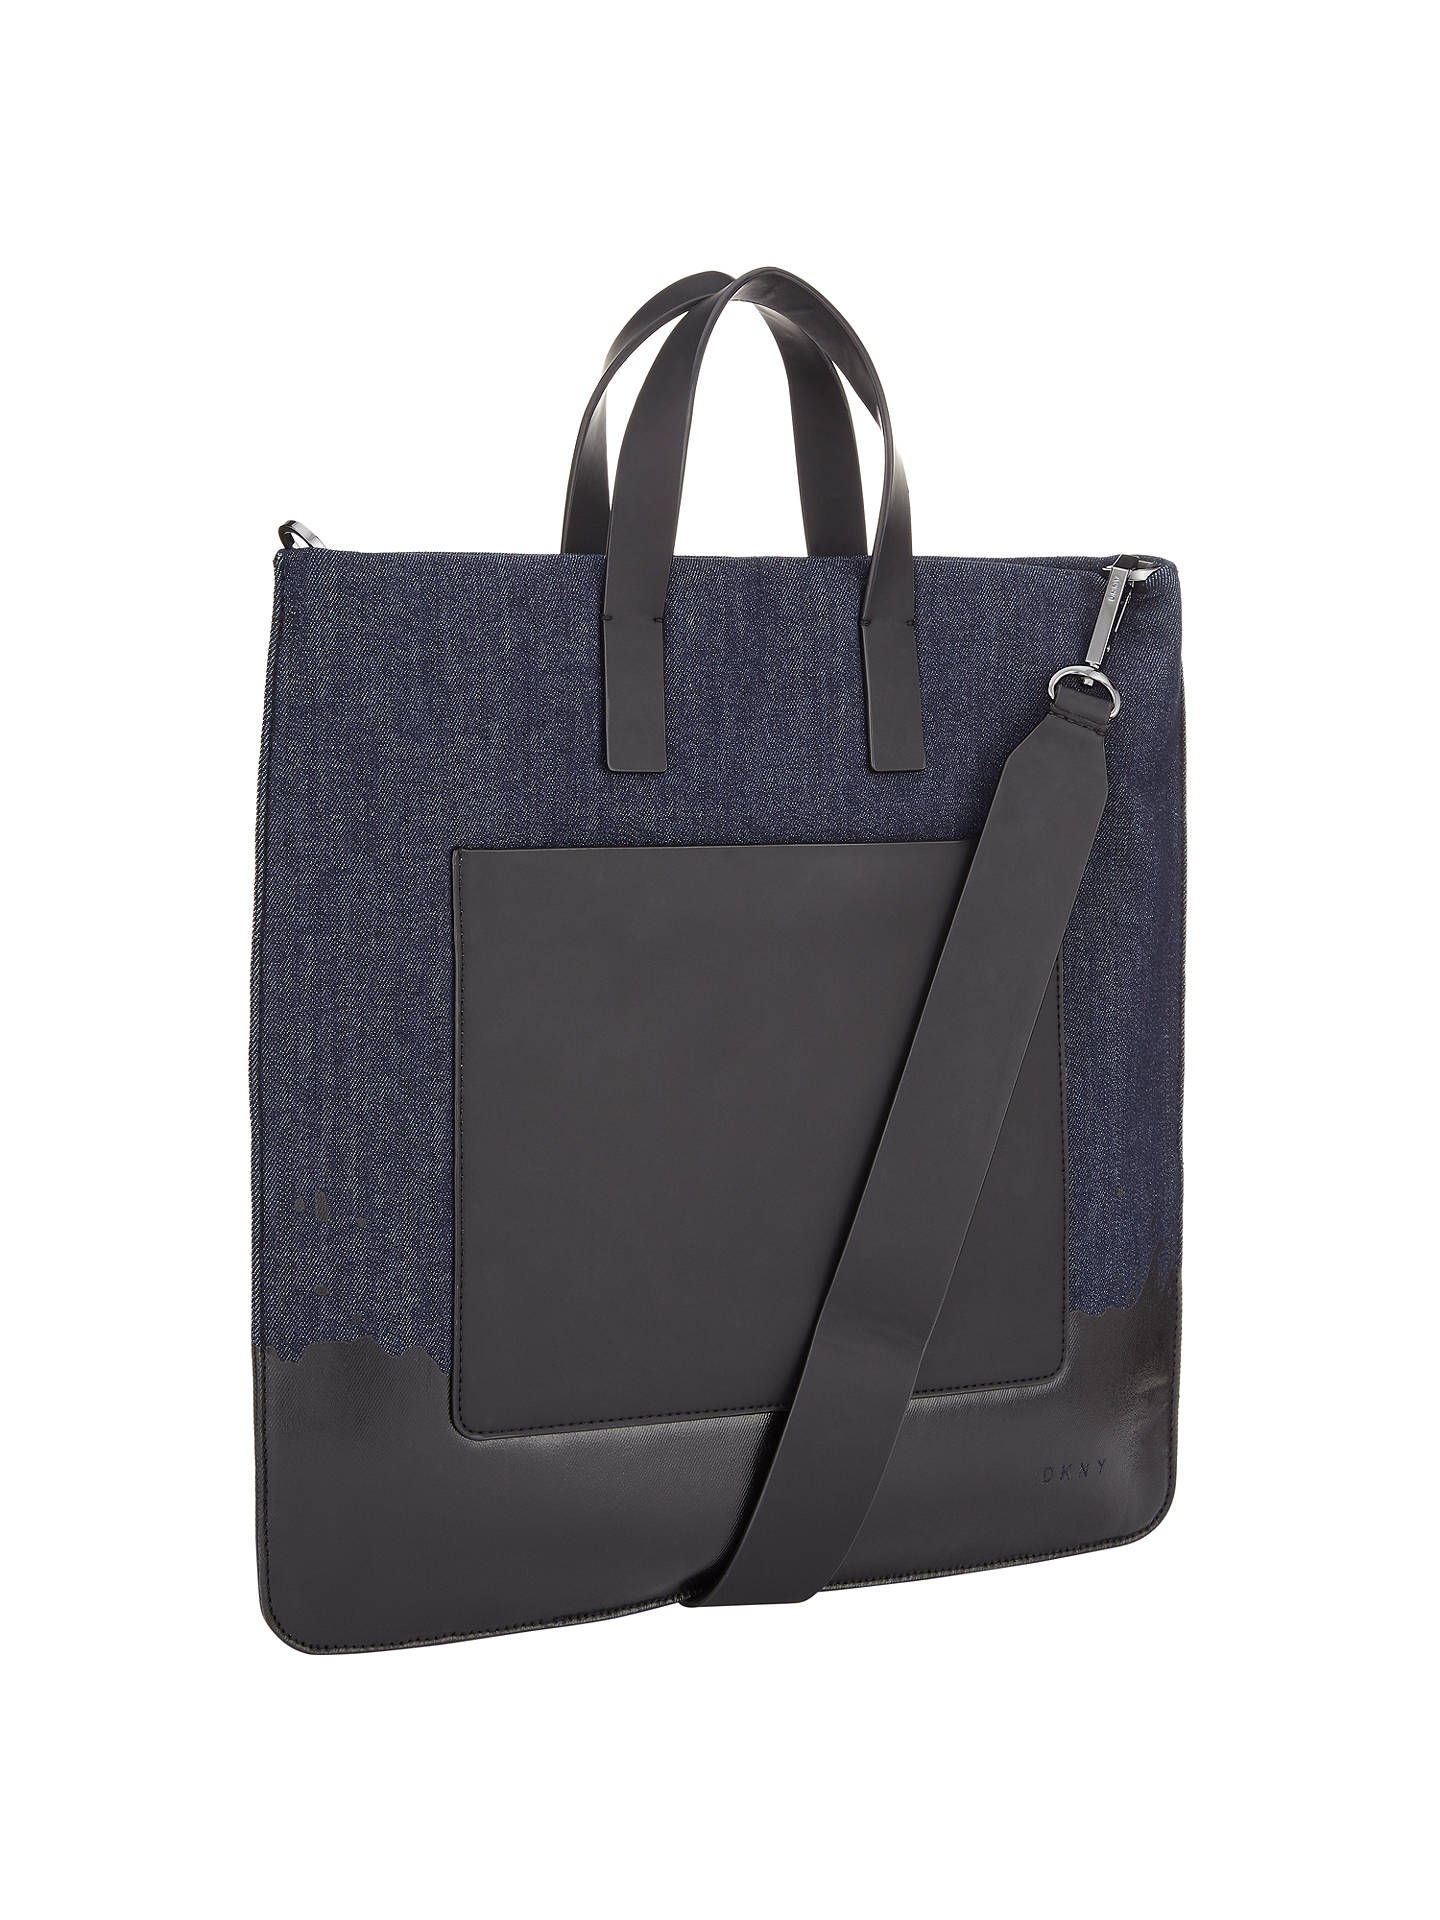 Tote Bag With Zip Sleep Is For People With No Internet Access Rainbow